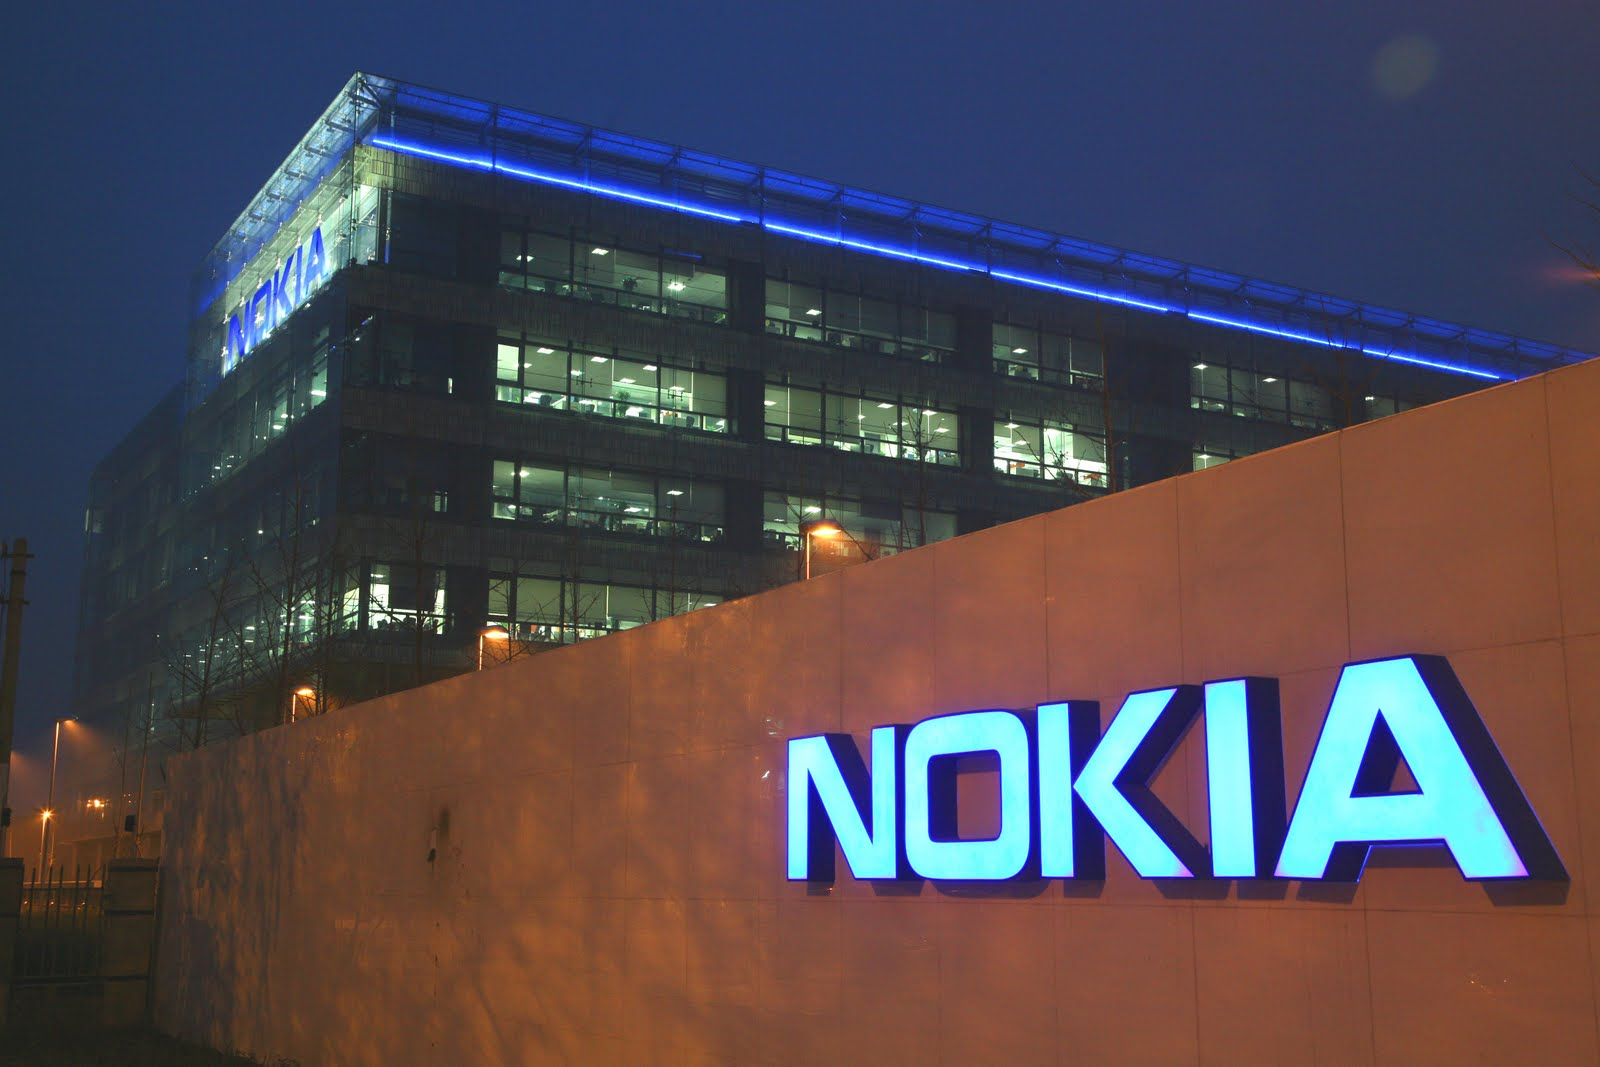 Nokia facing Chinese pressure with Symbian as Windows Phone launch looms